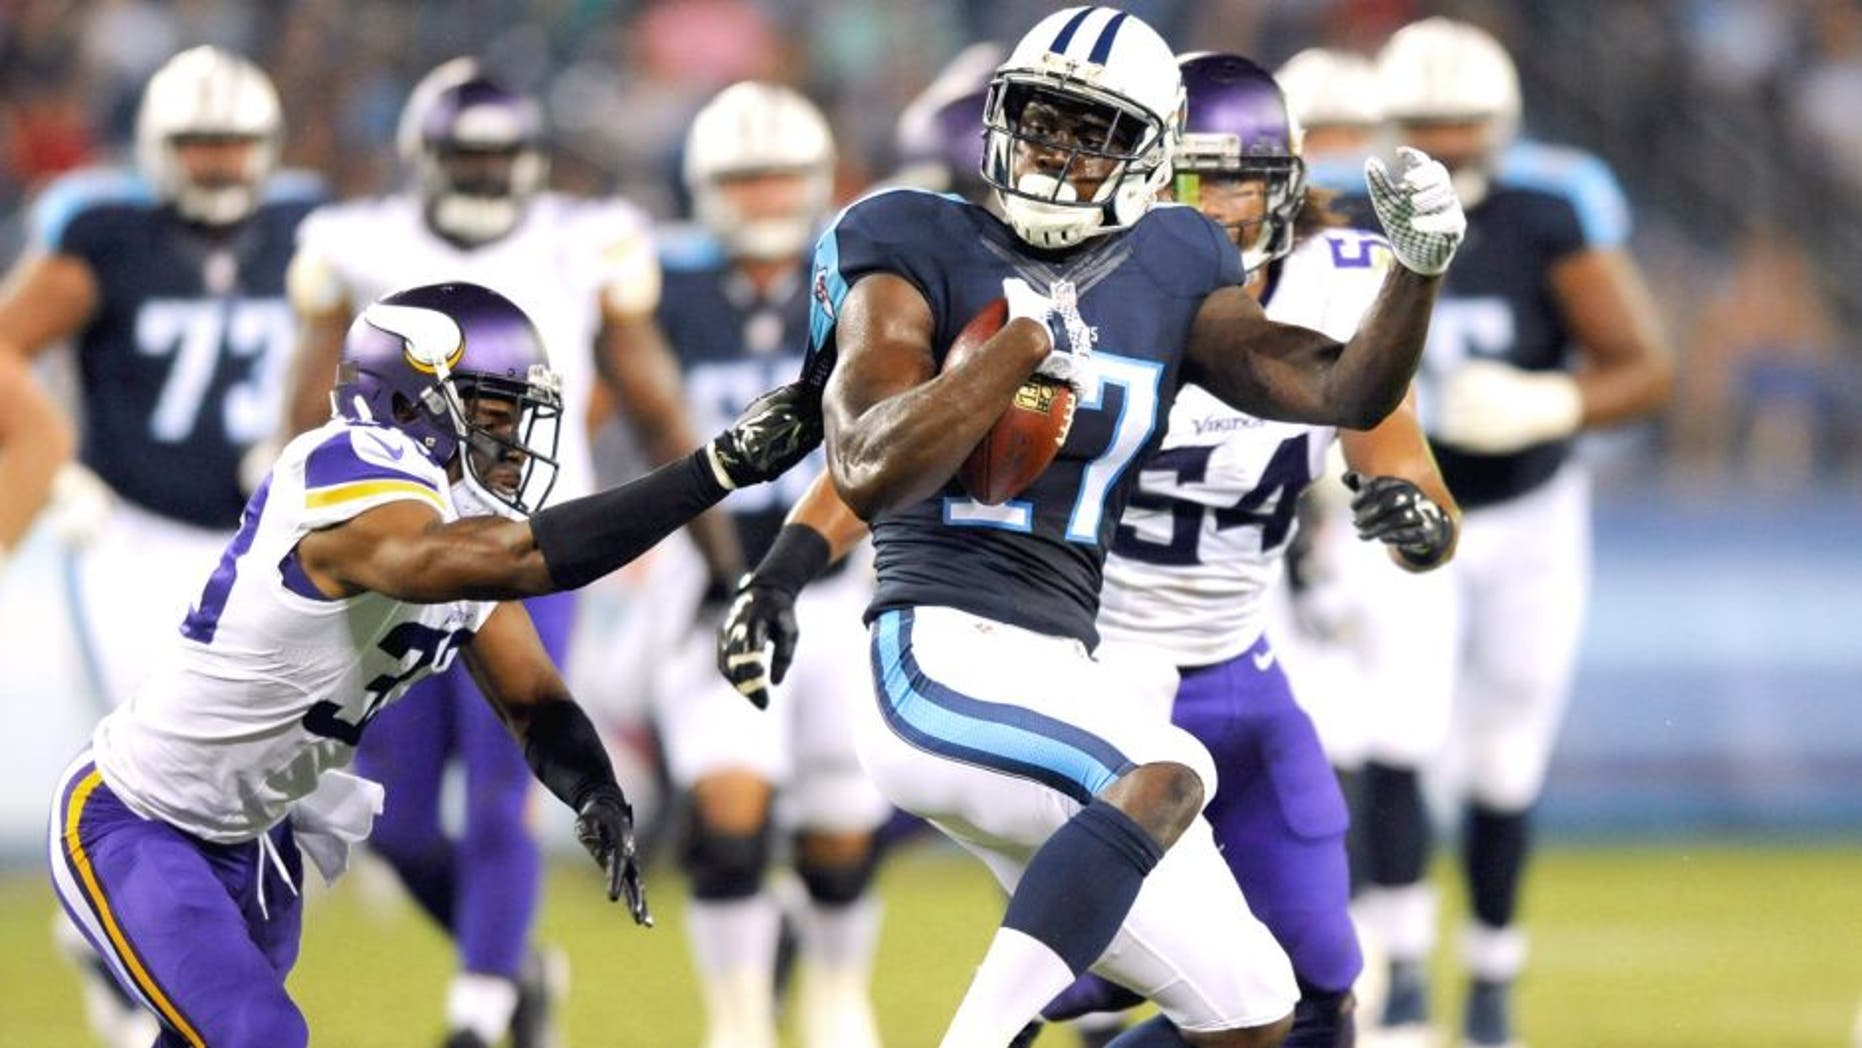 Sep 3, 2015; Nashville, TN, USA; Tennessee Titans receiver Dorial Green-Beckham (17) is tackled after a catch during the first half against the Minnesota Vikings at Nissan Stadium. Mandatory Credit: Christopher Hanewinckel-USA TODAY Sports